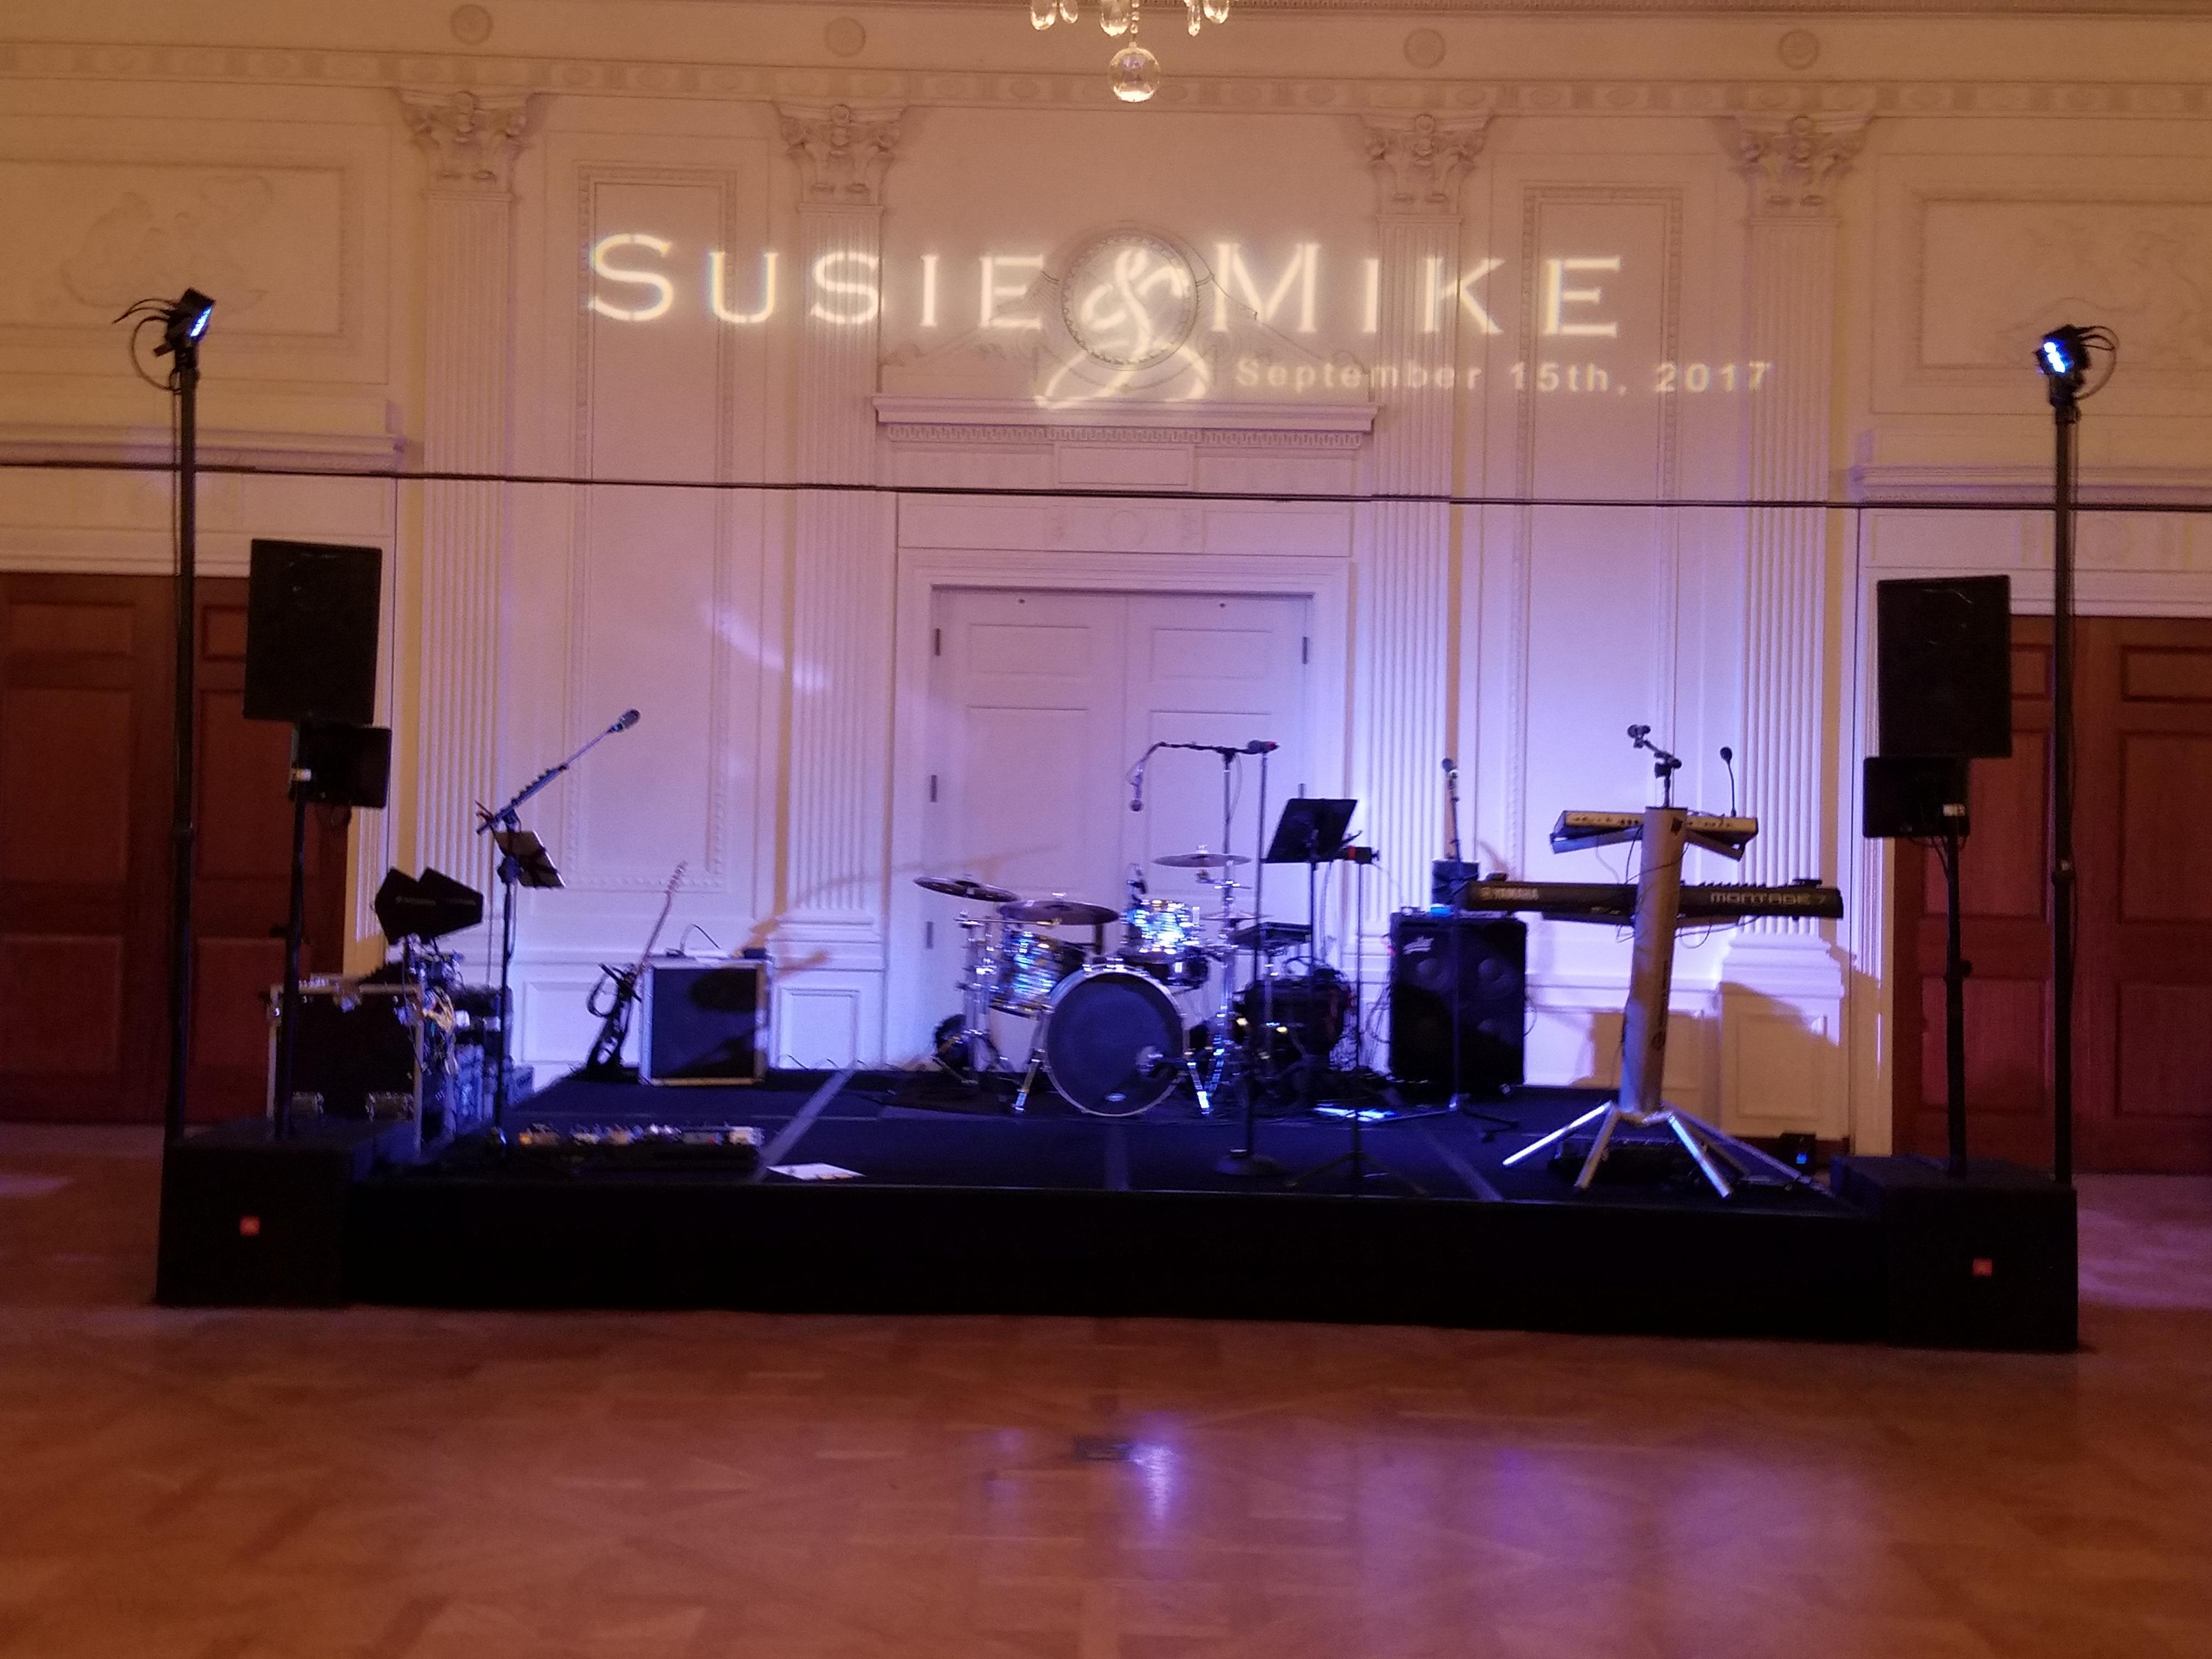 Susie and Mike's Nixon Library Wedding Entertainment was a Great Choice